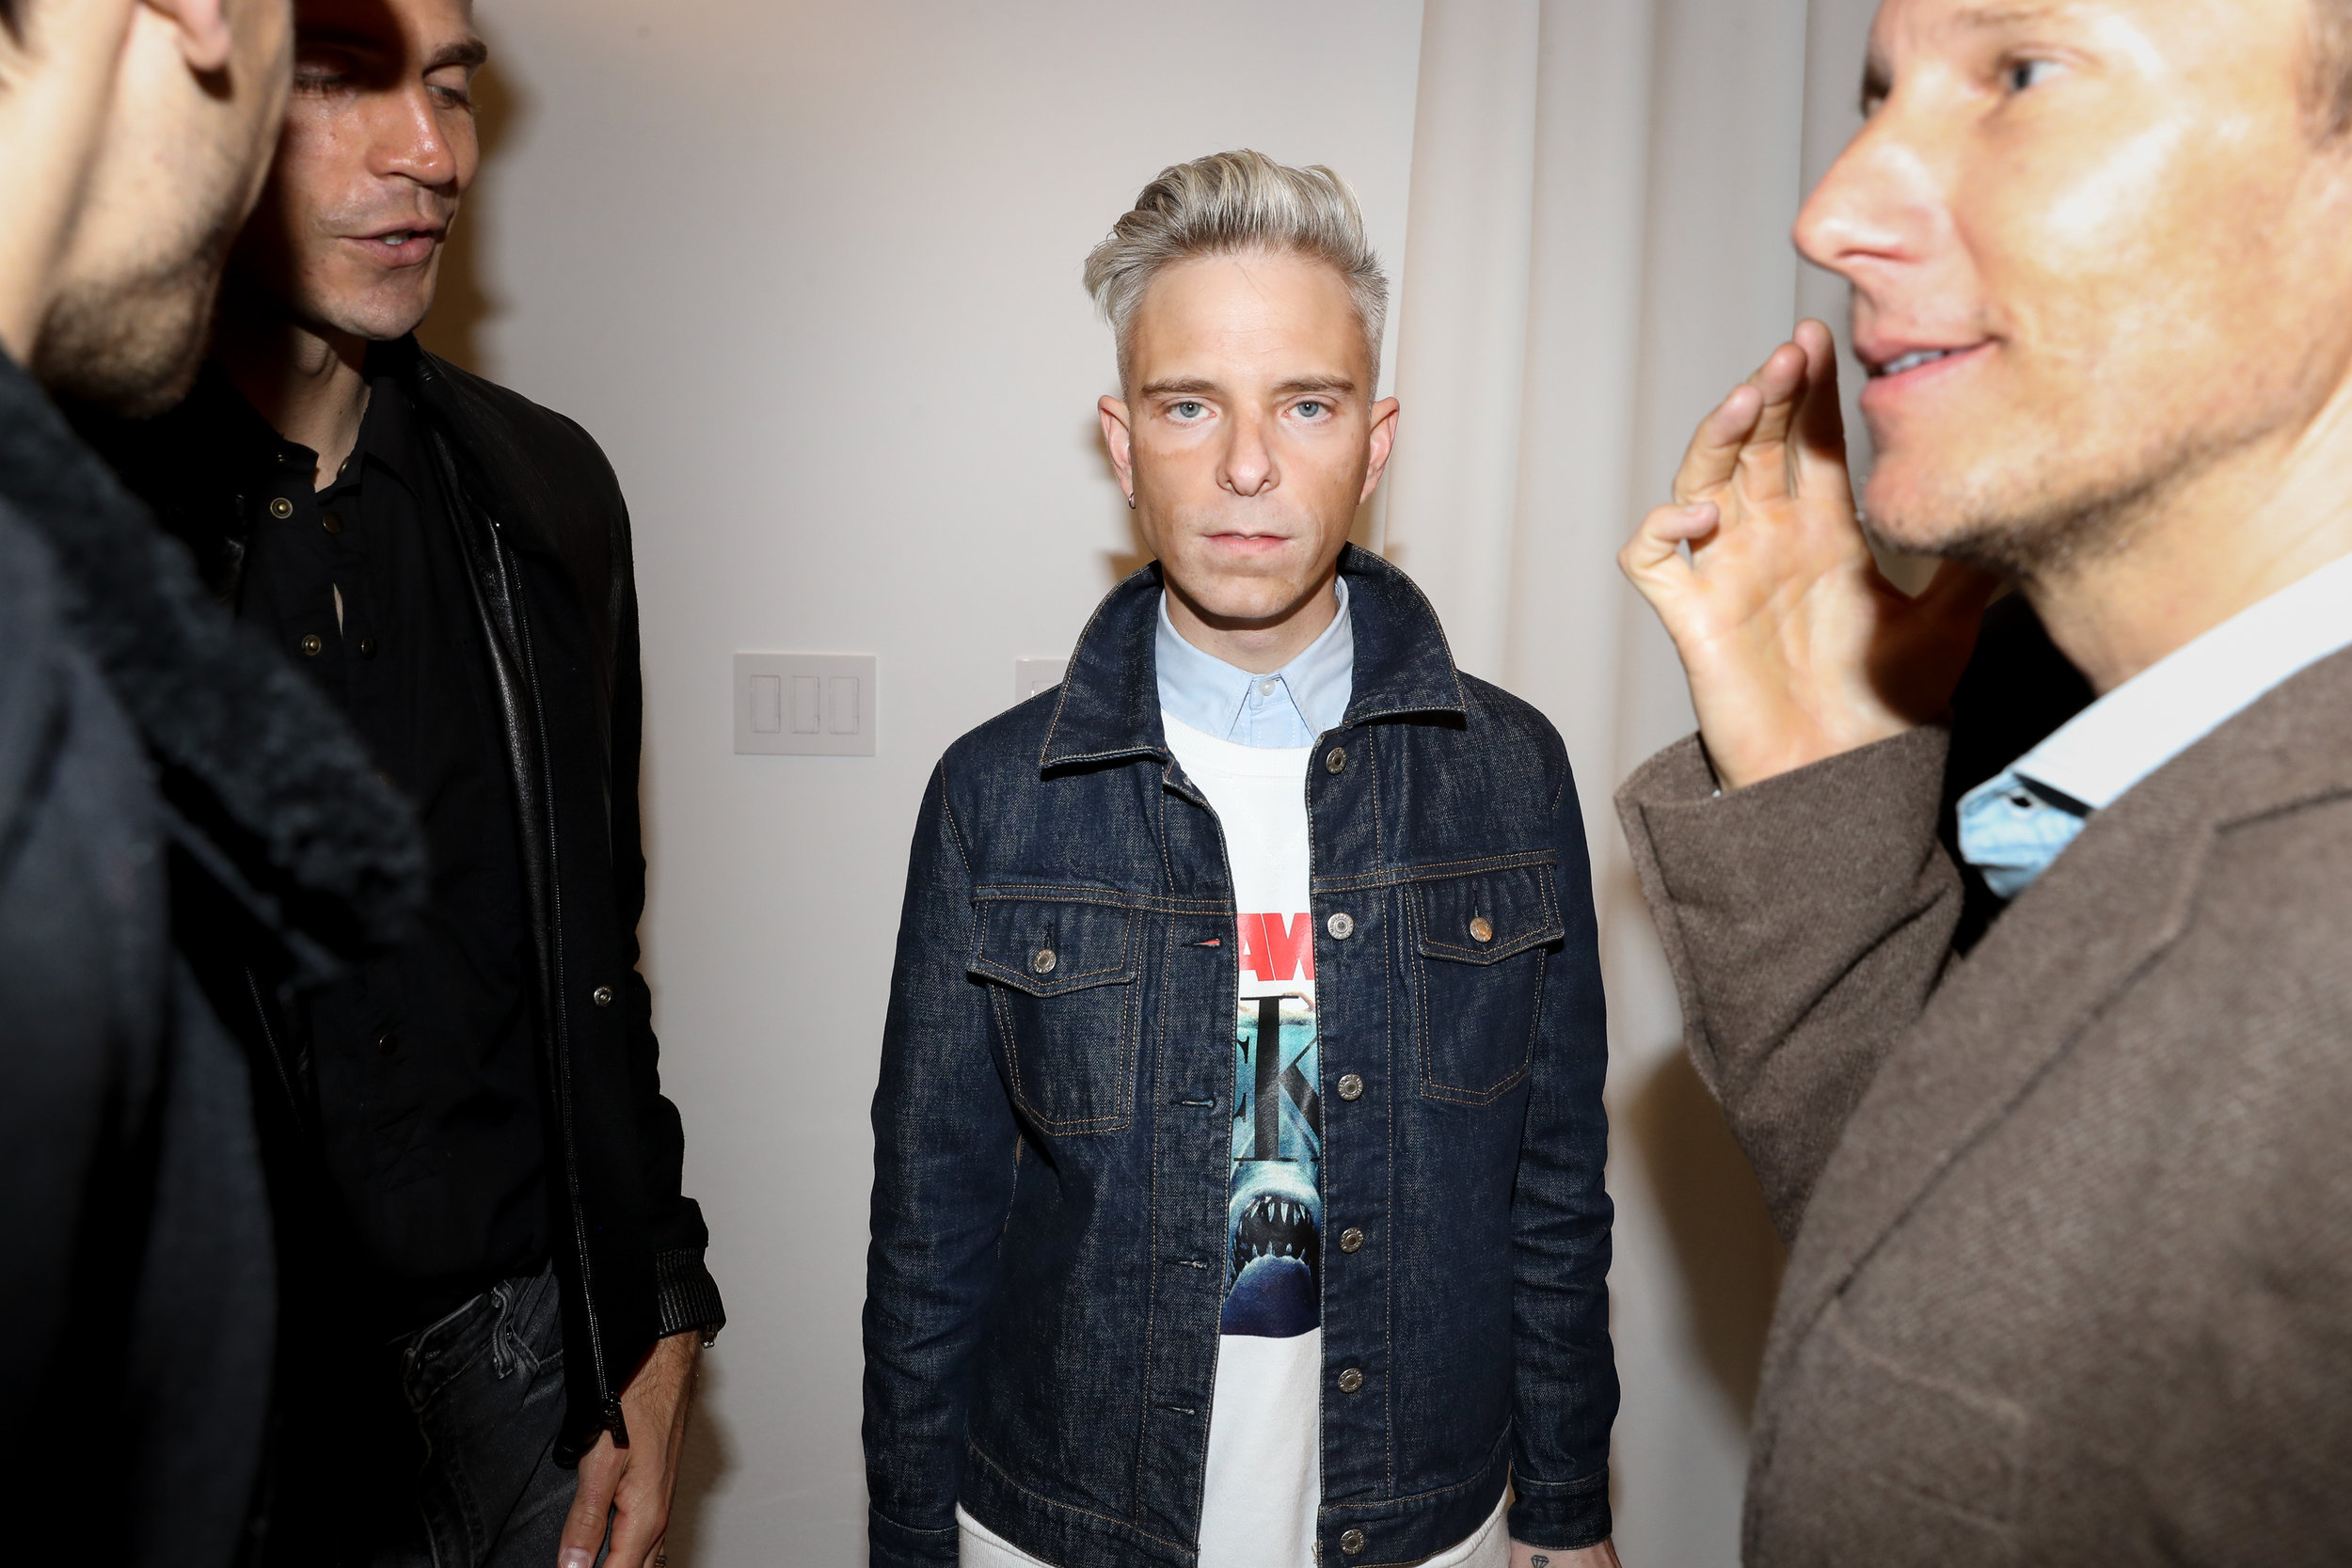 Drew Elliot attends The Opening of The Dr. Barbara Sturm Zero Bond Boutique & Spa on Thursday, May 2, 2019. Photographed by Neil Rasmus/BFA.